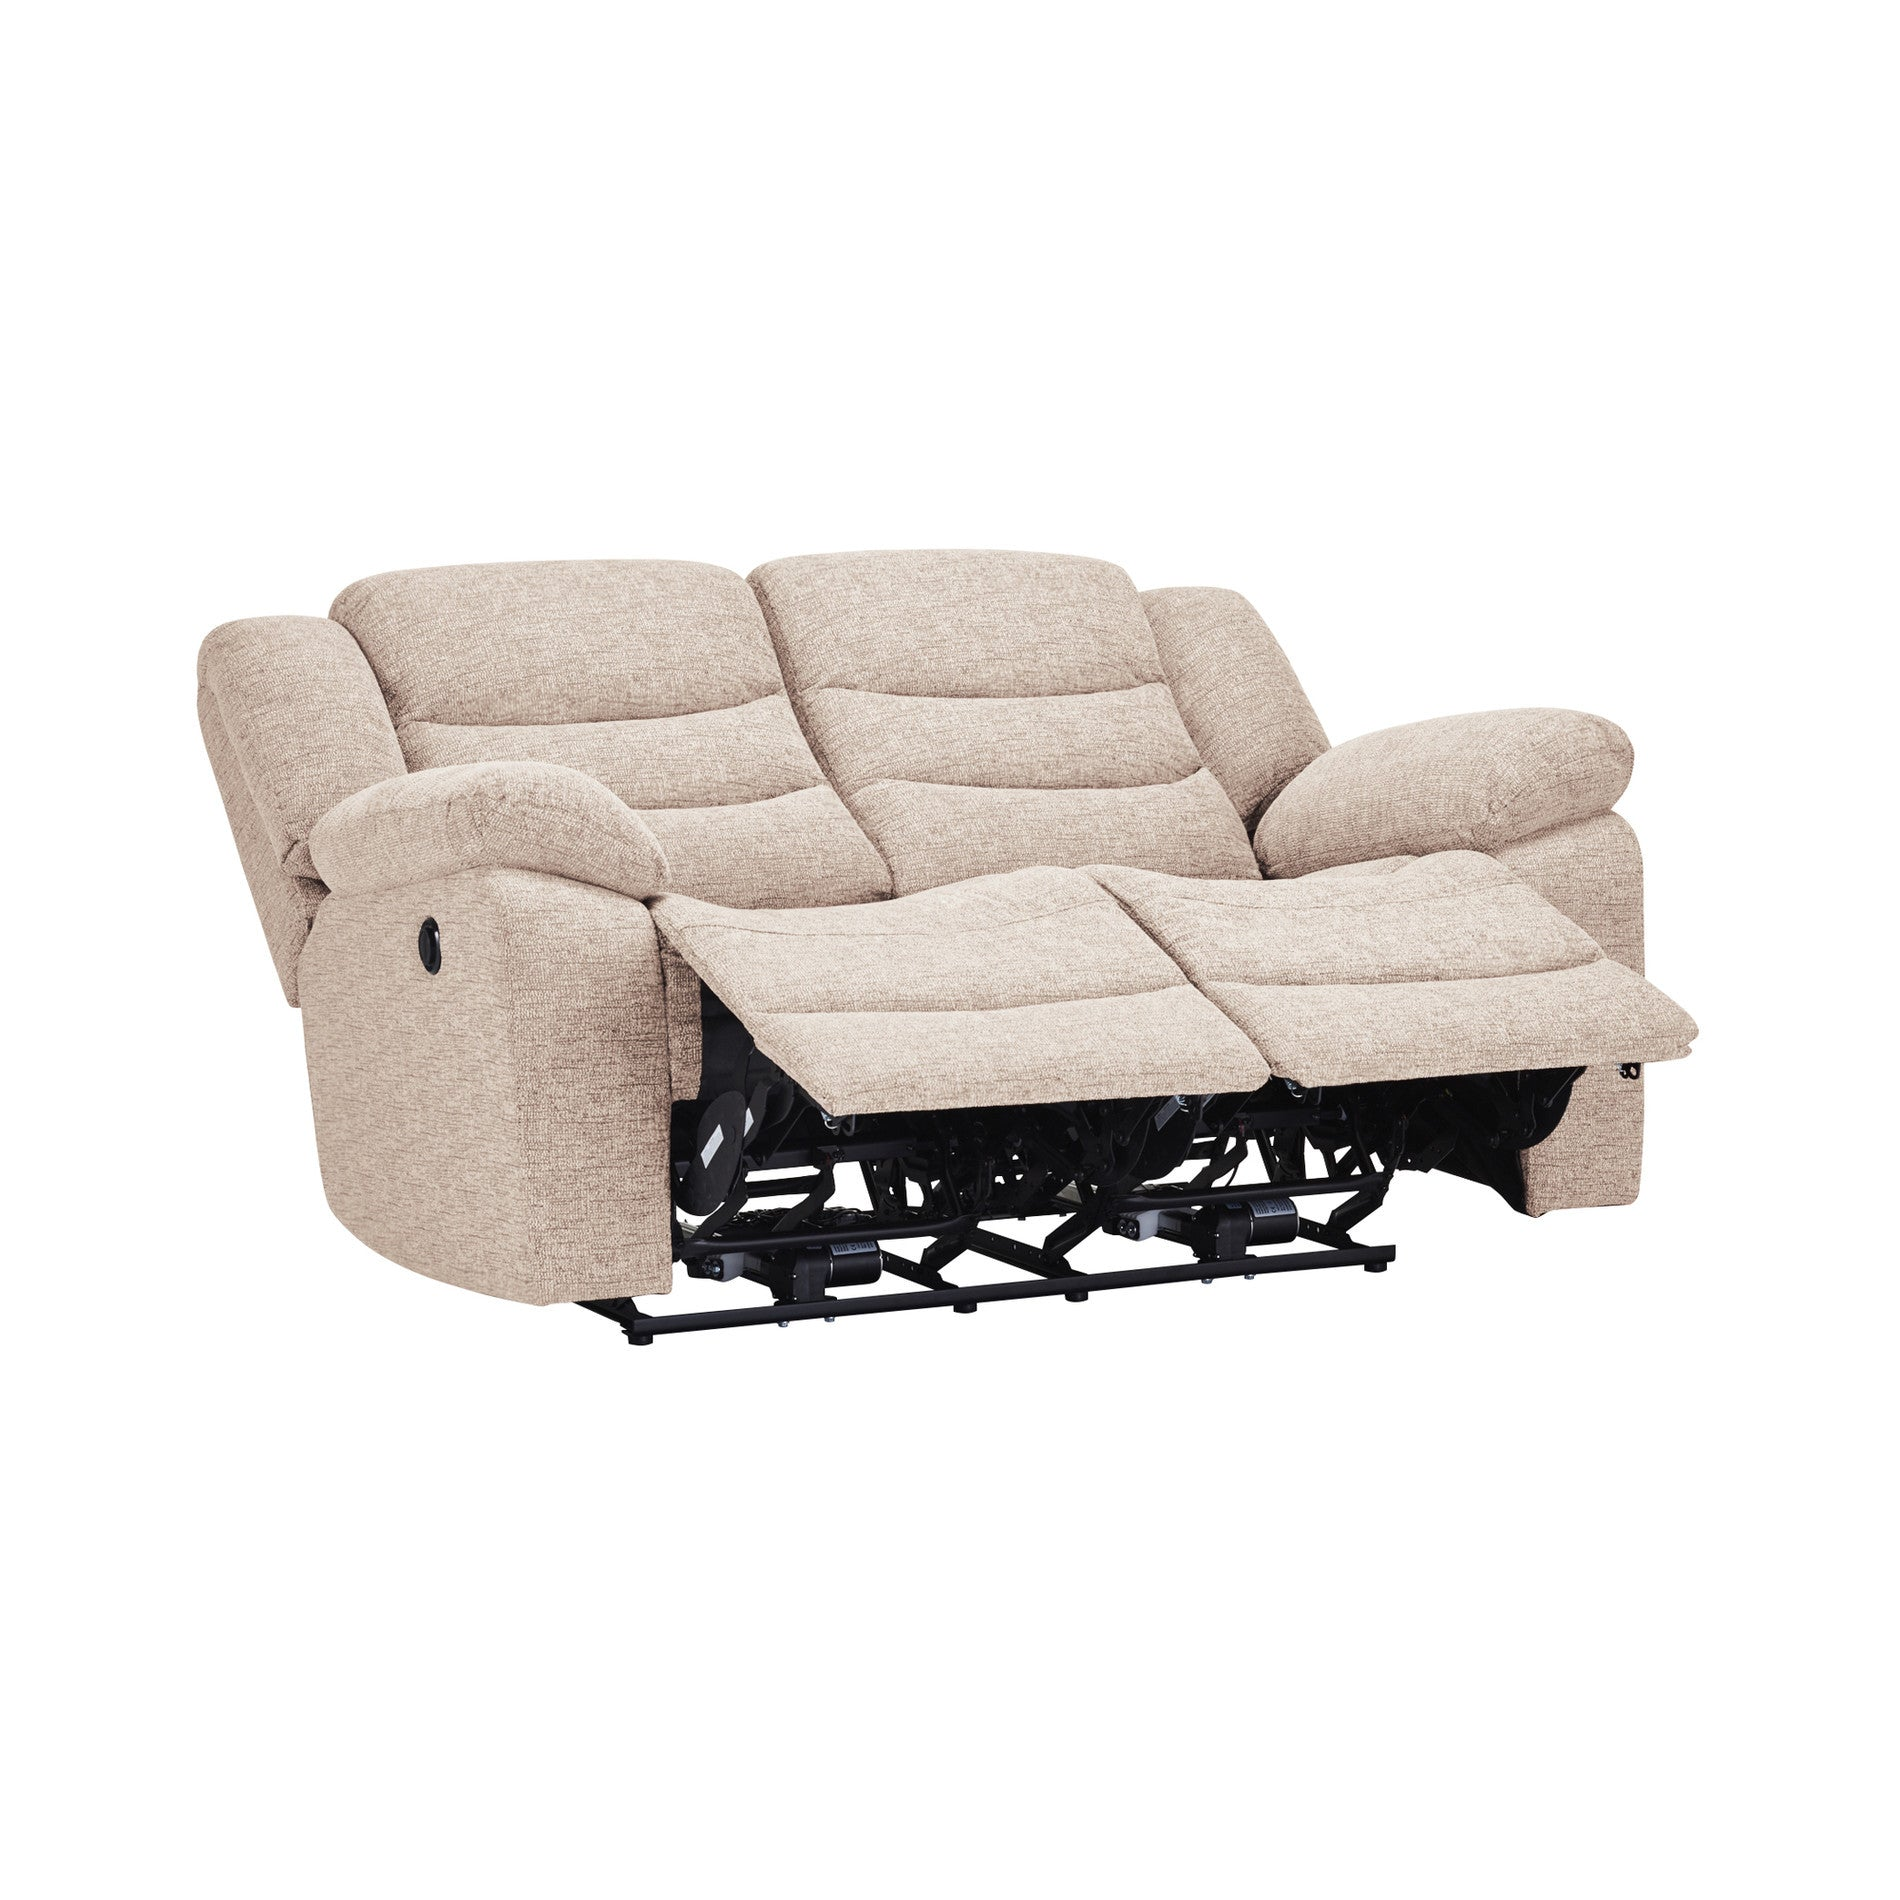 Grayson 2 Seater Electric Recliner Sofa - Oatmeal Fabric  sc 1 st  Sofa Store Spain - Shopify & Grayson 2 Seater Electric Recliner Sofa - Oatmeal Fabric u2013 Sofa ... islam-shia.org